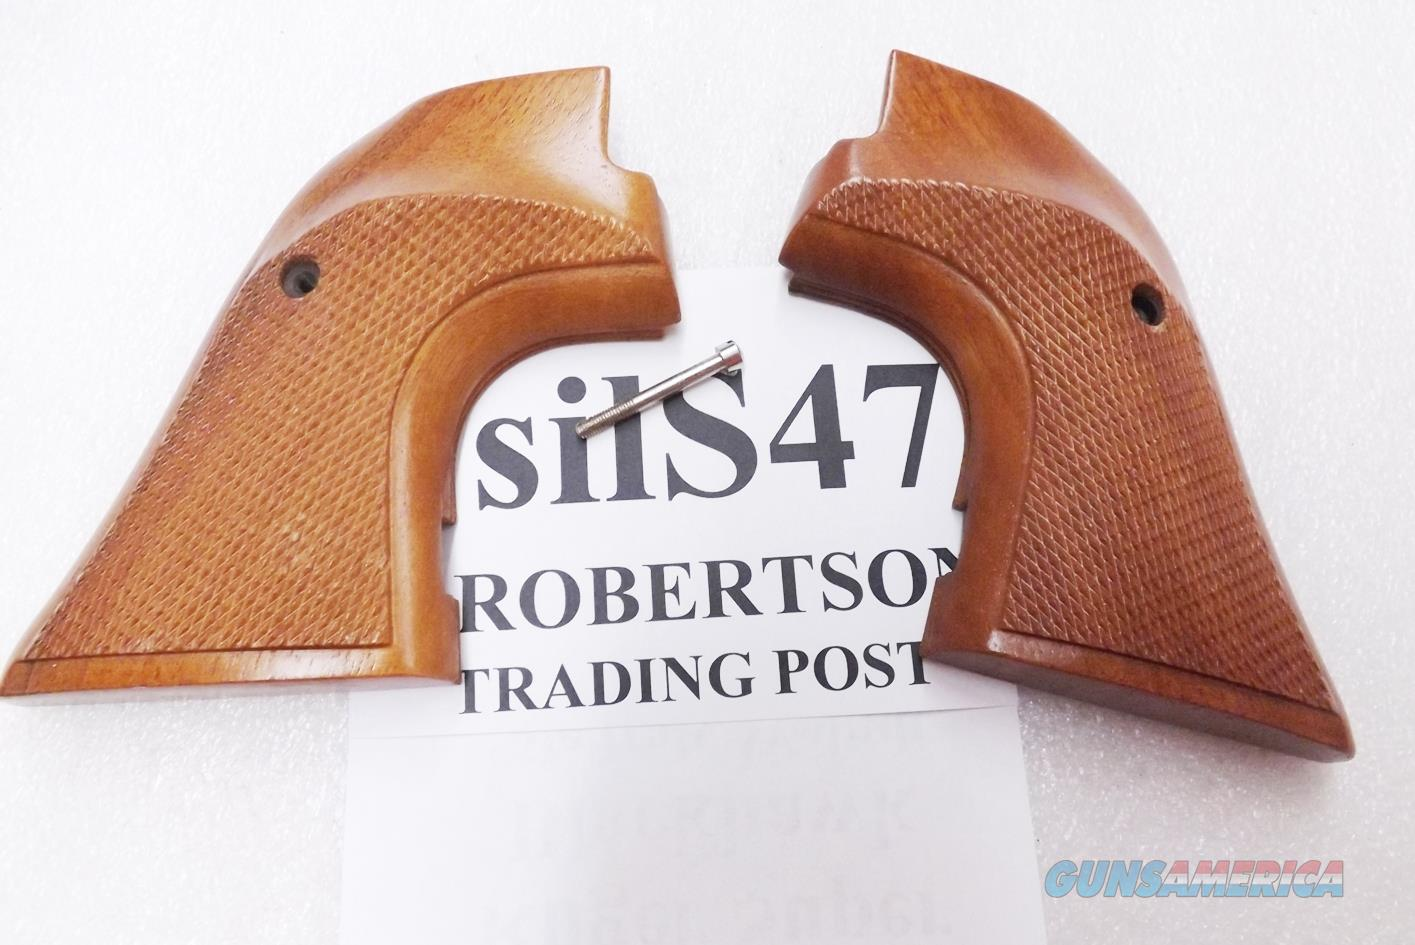 Sile Italian Walnut Target Grips Stocks for Ruger Super Blackhawk Revolver with square Dragoon type Trigger Guards New Old Stock 1980s end Knuckle busting  Non-Guns > Gun Parts > Grips > Other